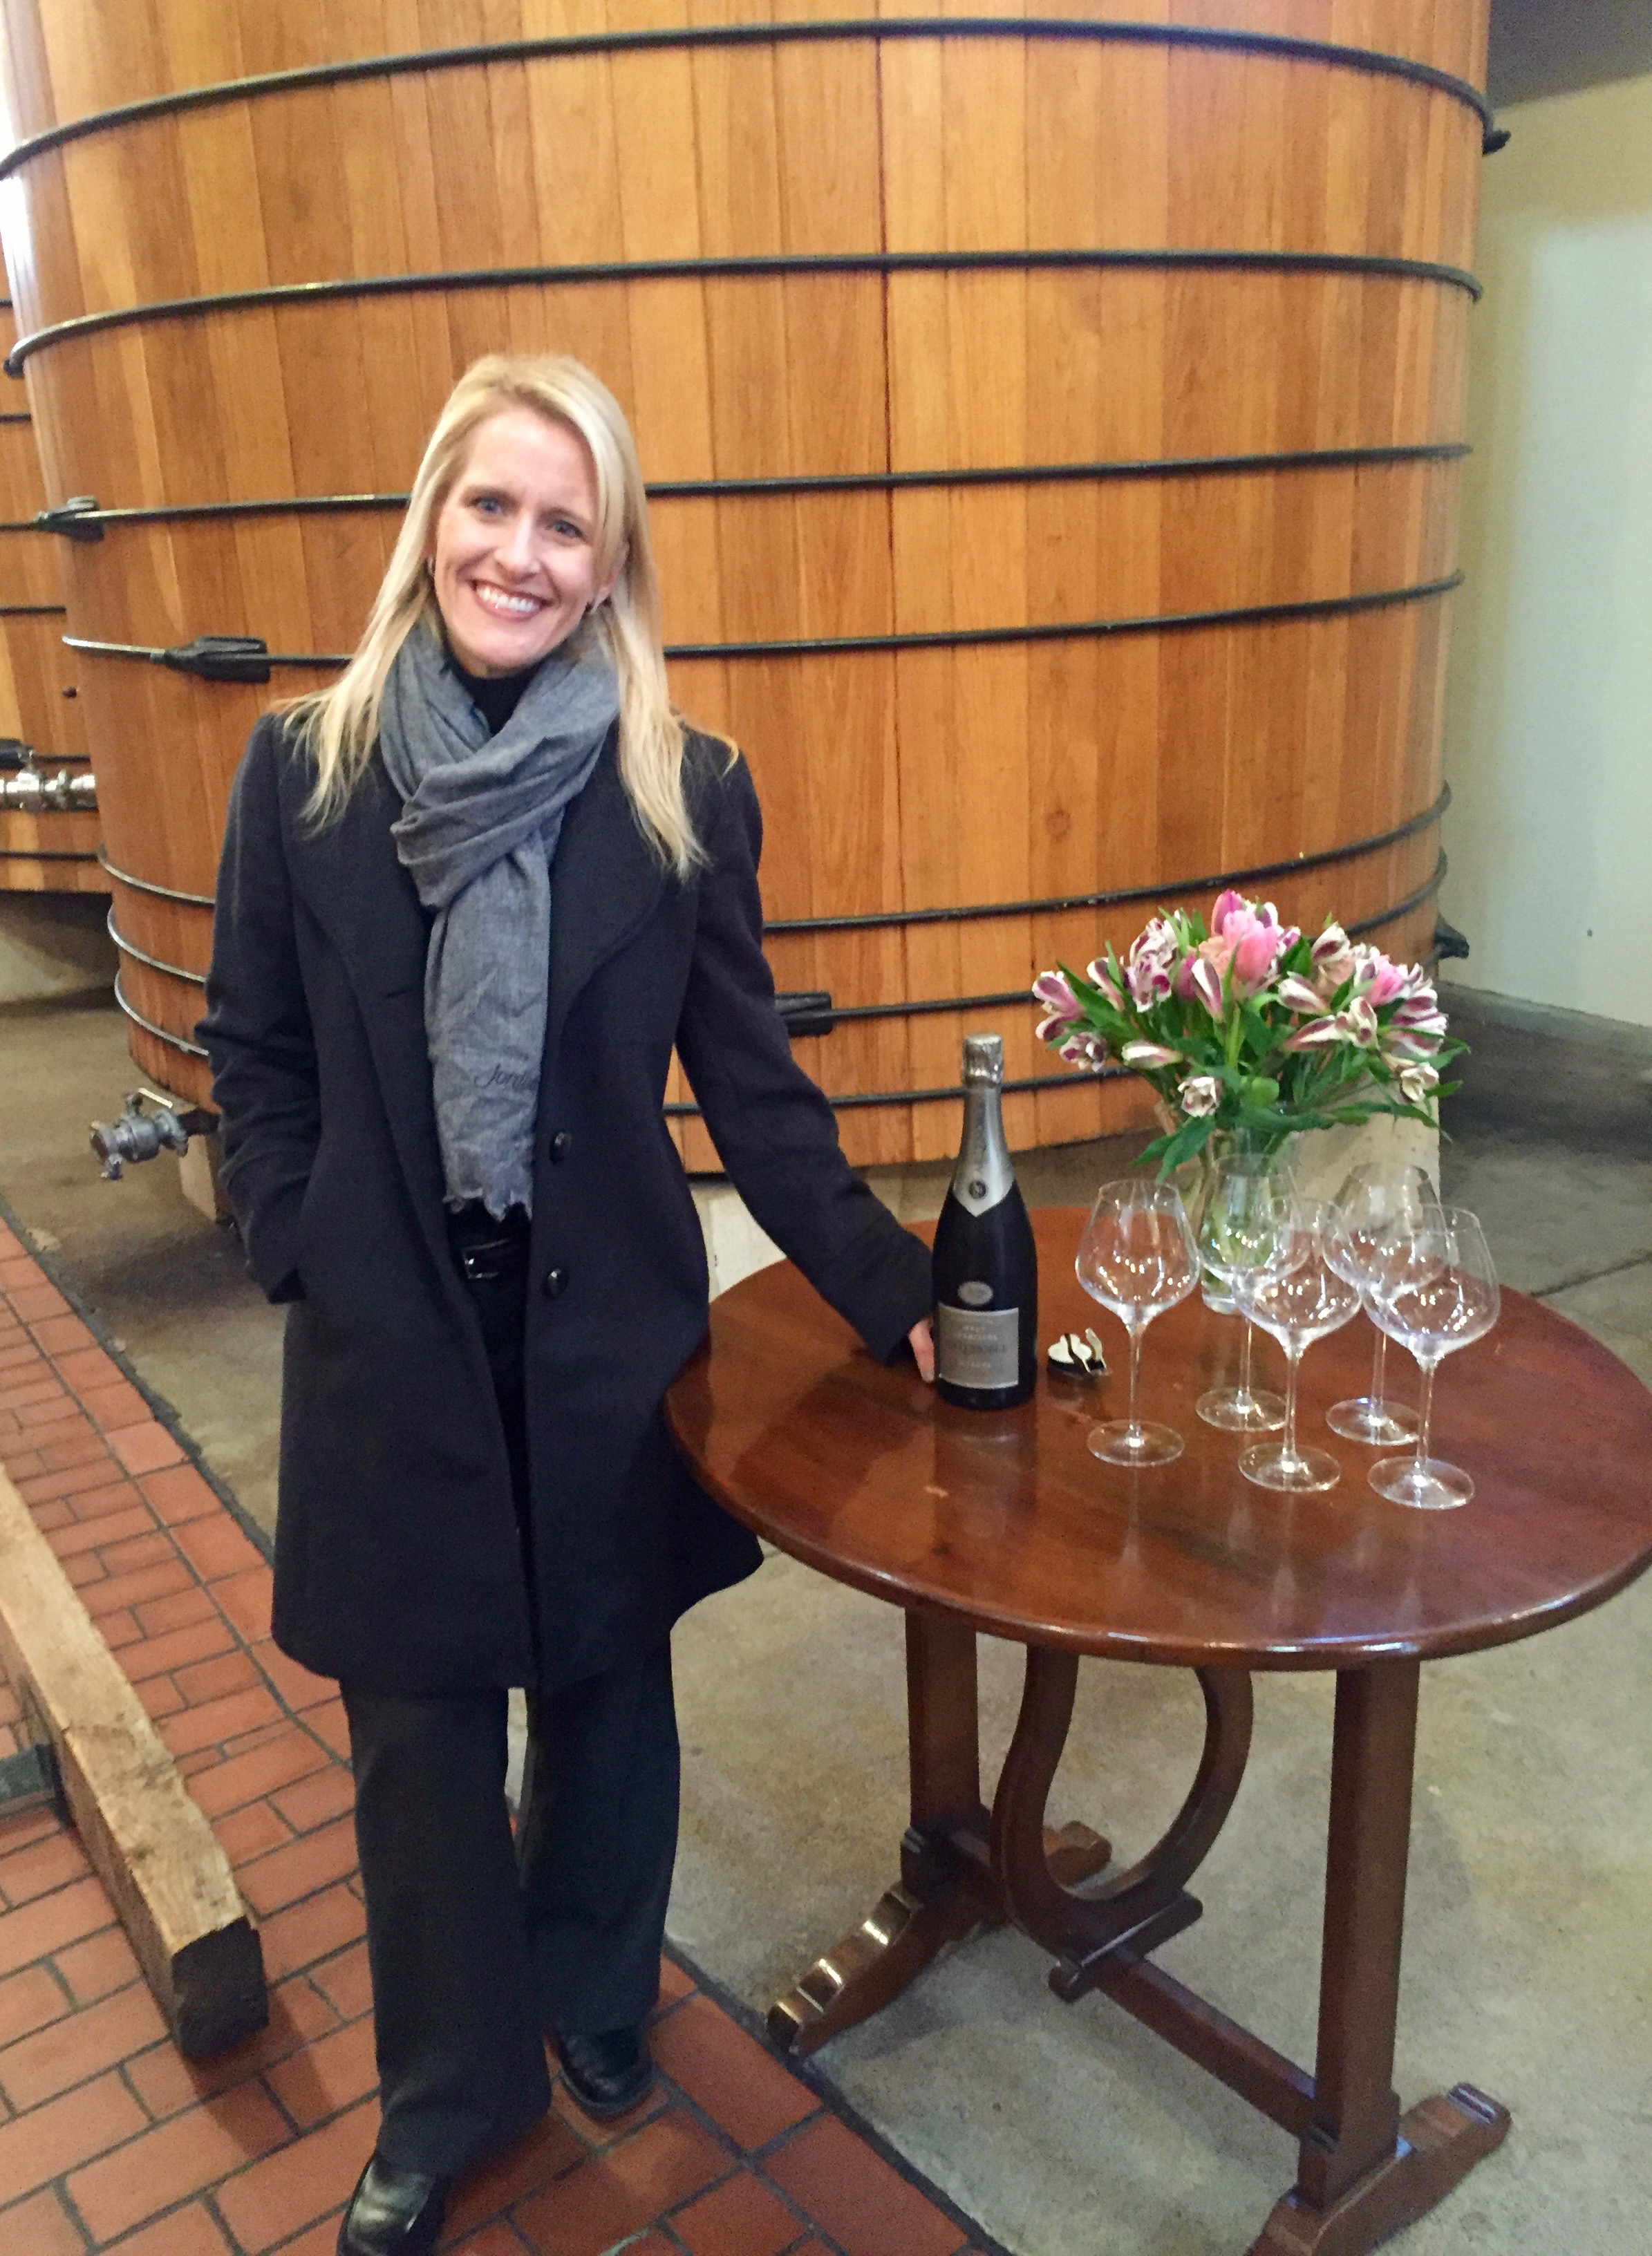 Lisa Mattson, Director of Marketing and Communications, ready to share the Jordan Cuvée.